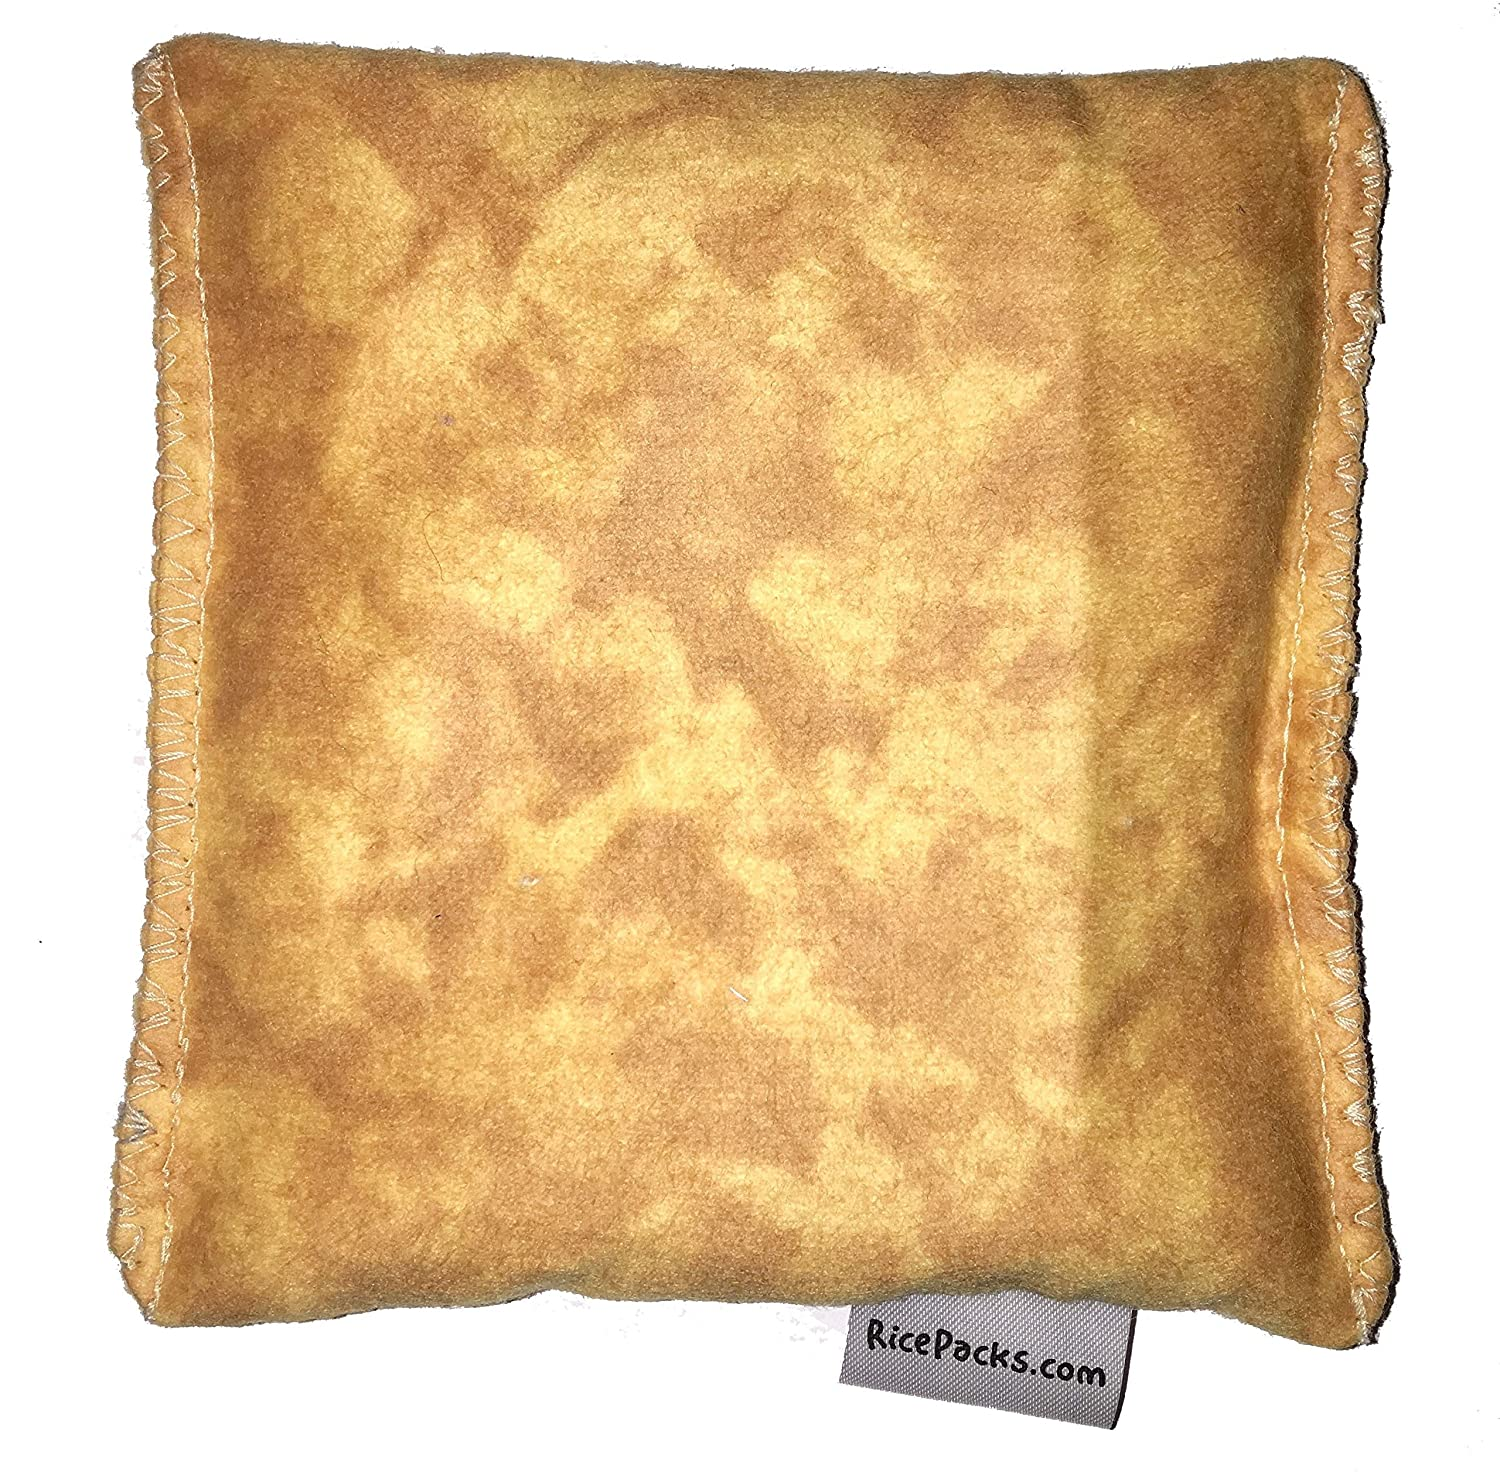 Cinnamon Hot Cold Pack Microwave Heating Pad Reusable Ice Pack Aroma Therapy, Hot Therapy, Cold Therapy, Aromatherapy, Rice Pack, Booboo Pillow